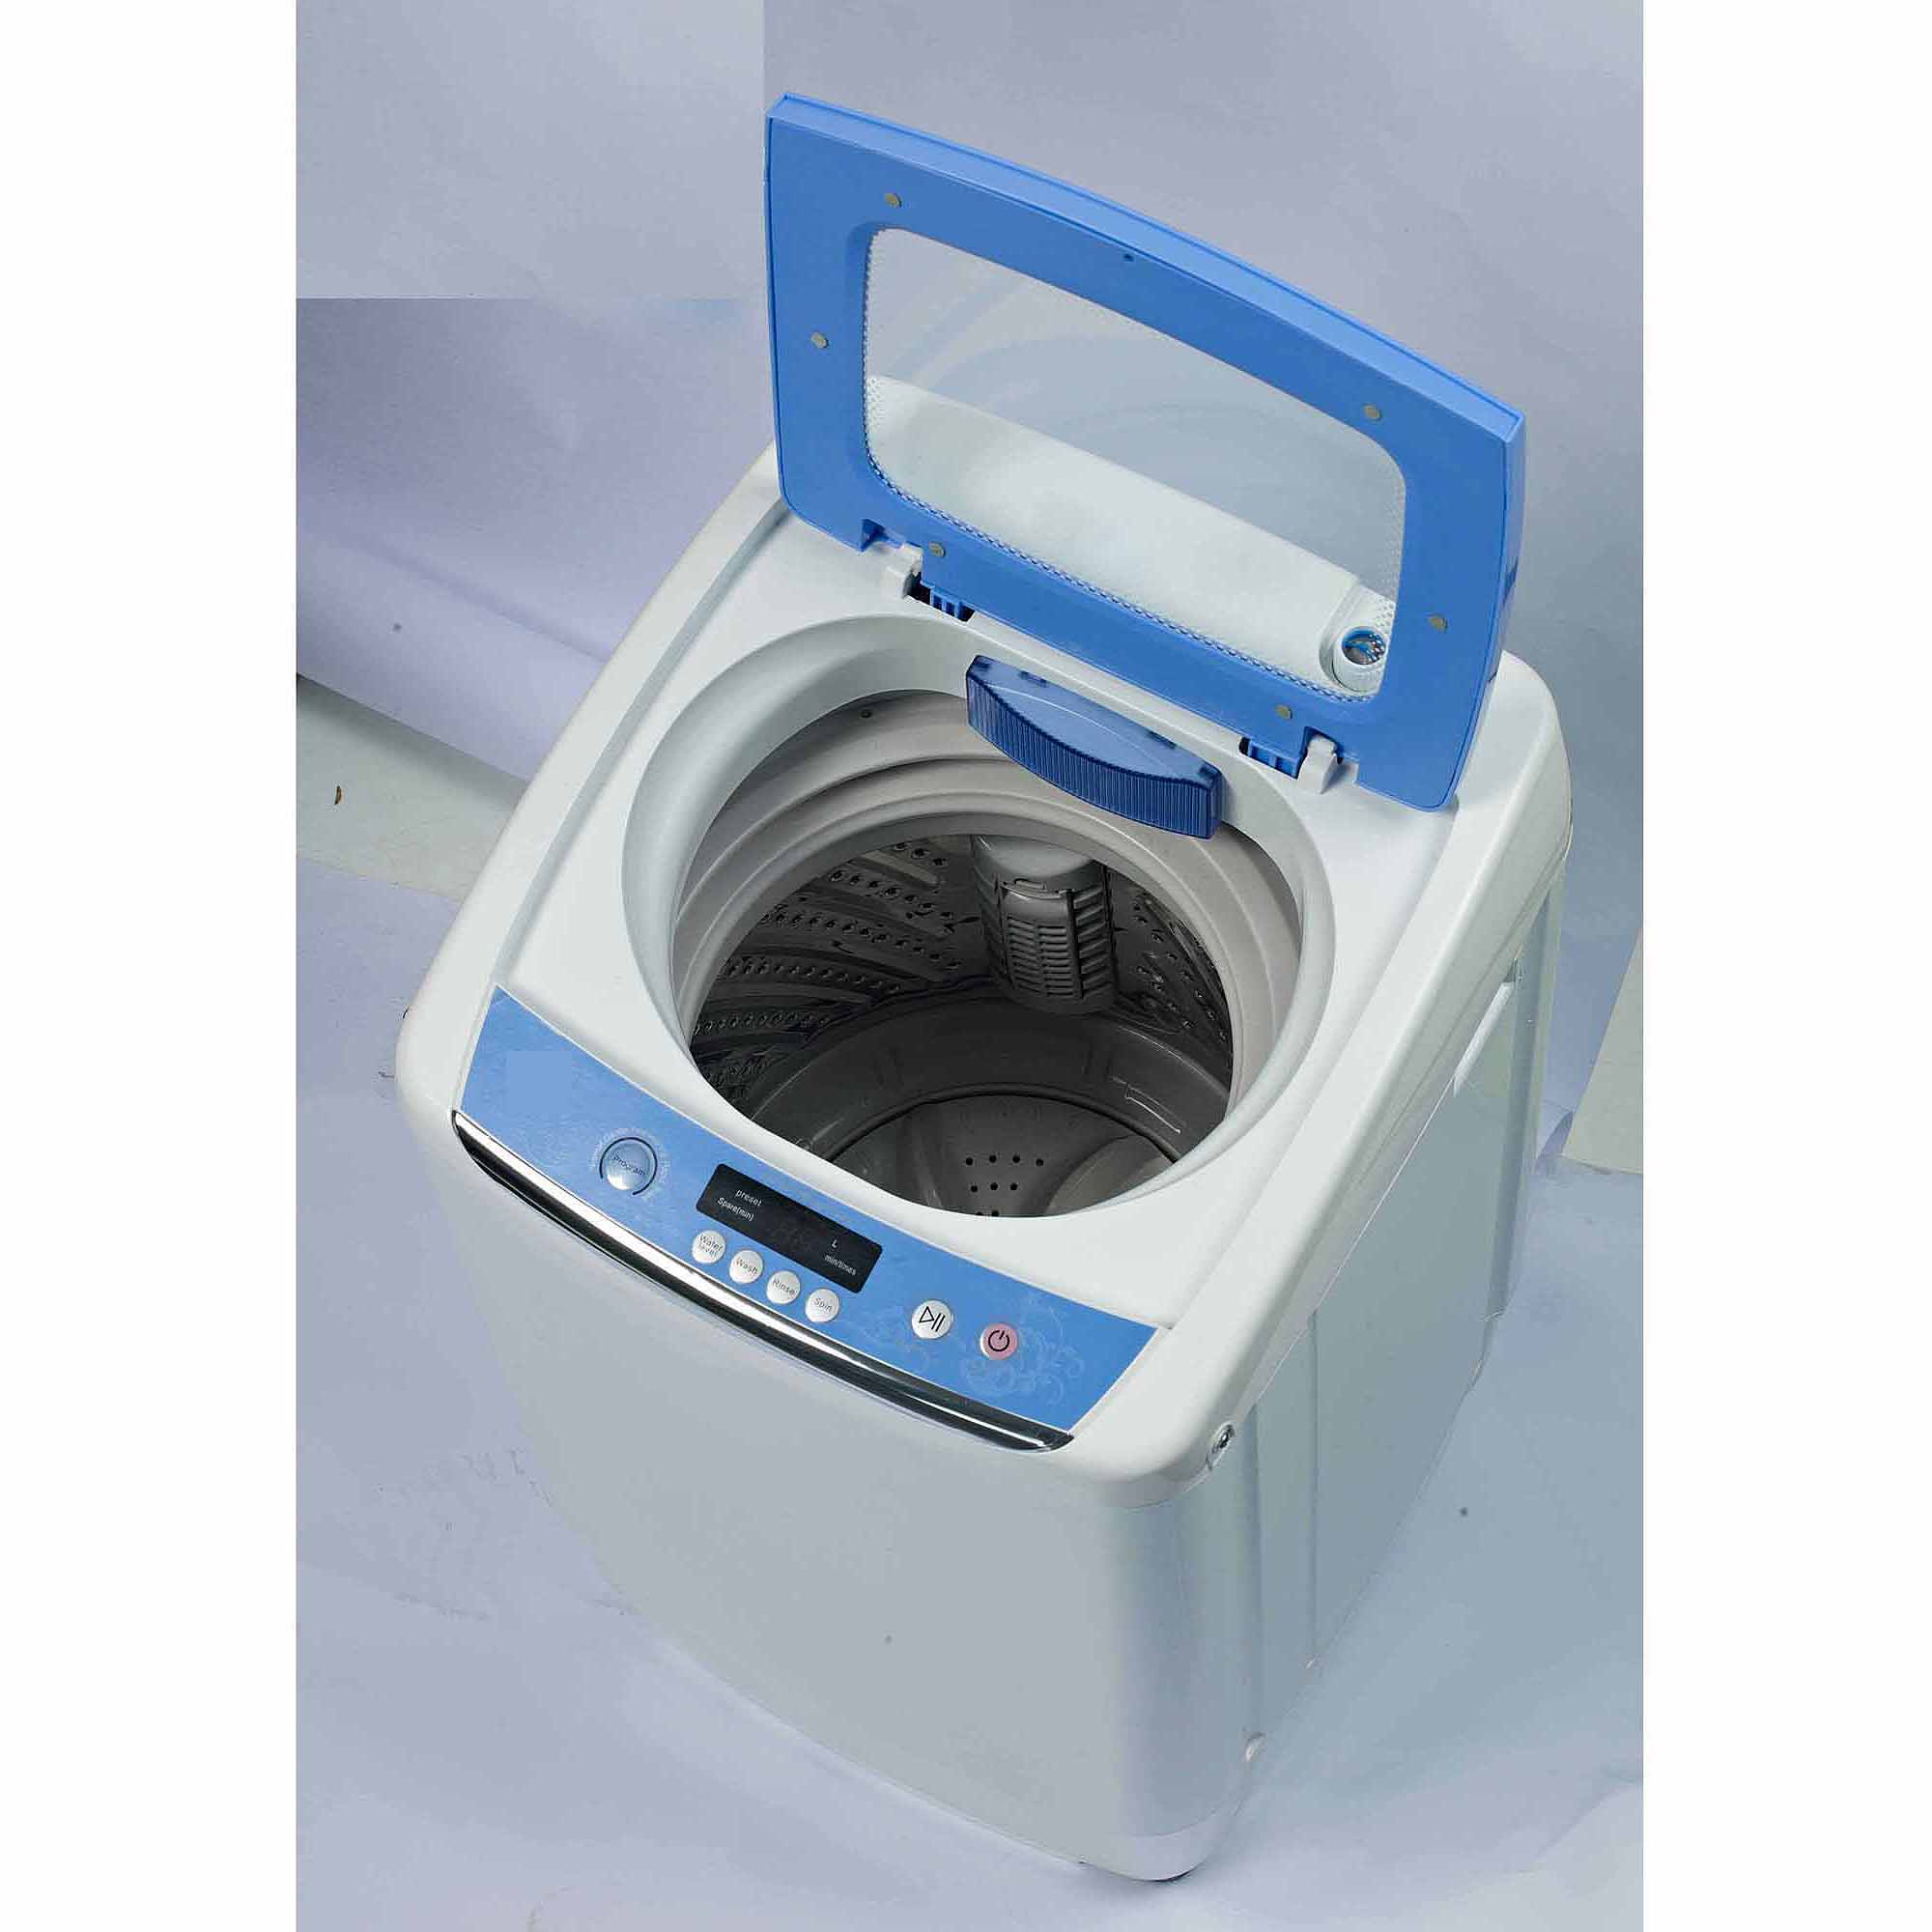 RCA 0.9 cu ft Portable Washer w/ Your Choice of Iron or Garment ...